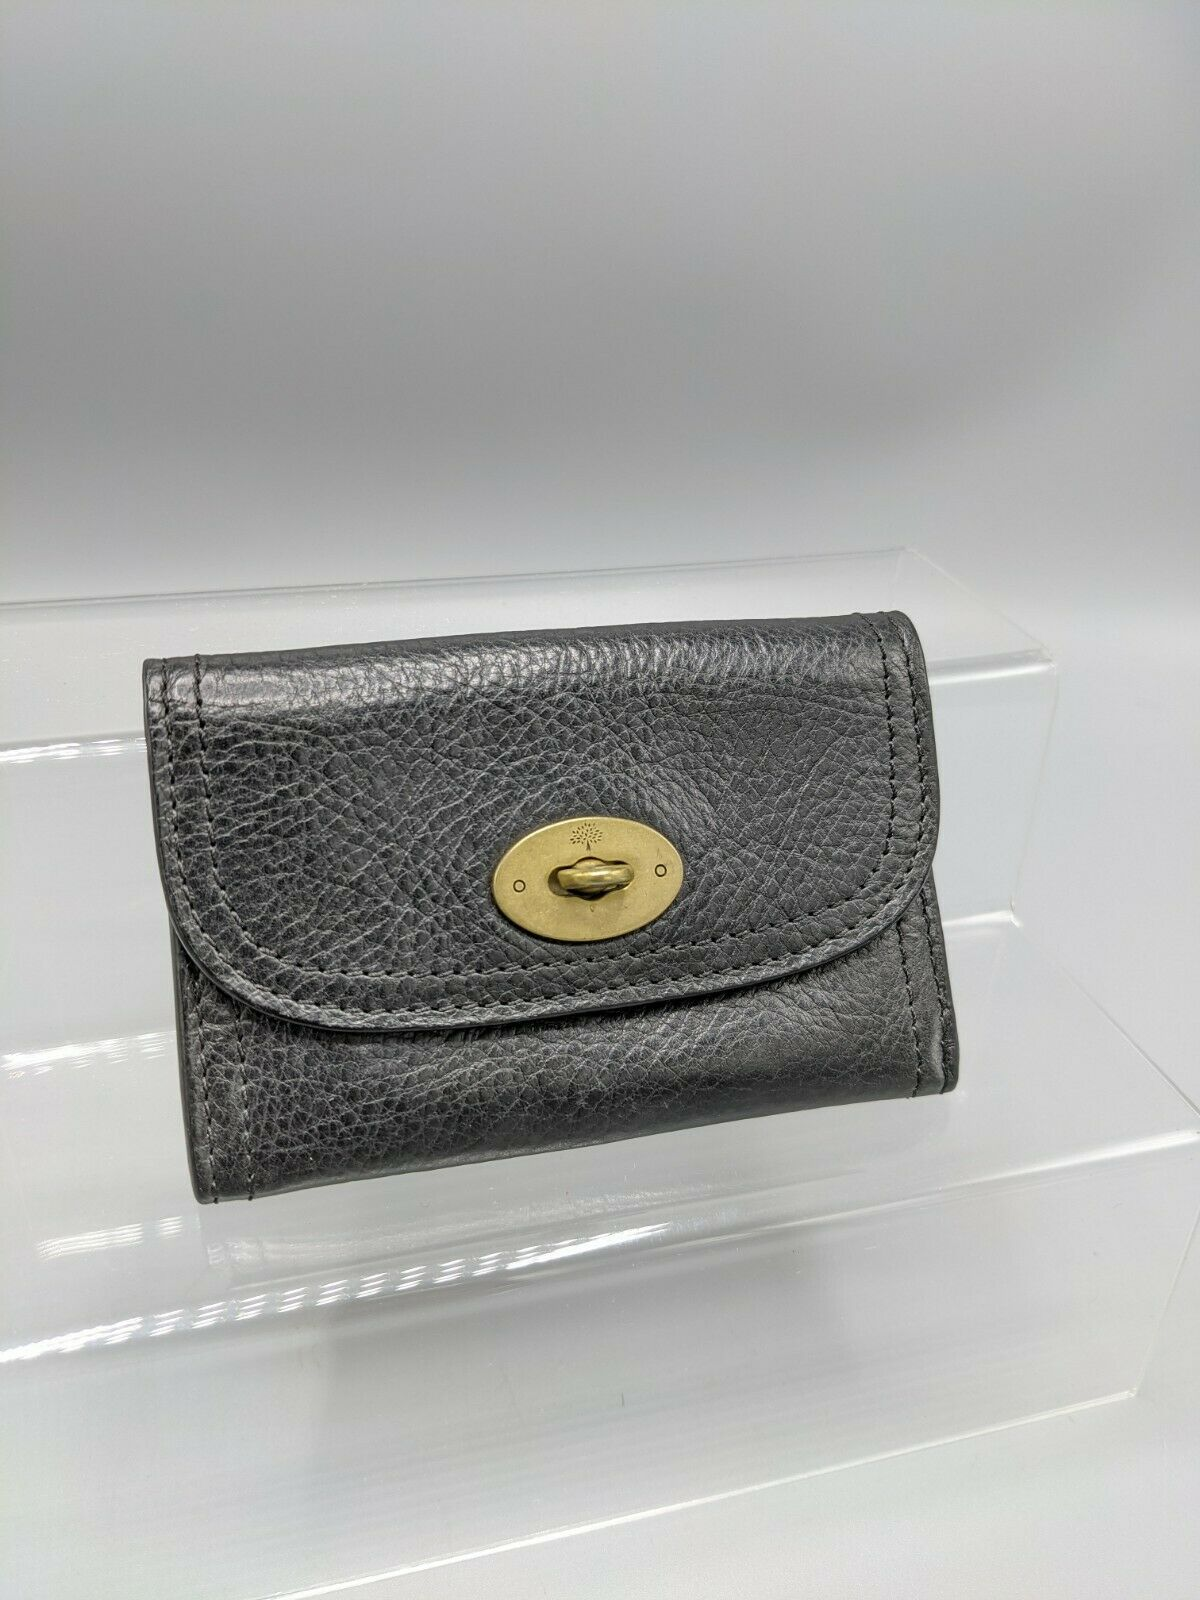 Mulberry Small Postman's Lock Wallet/Purse in Black Leather